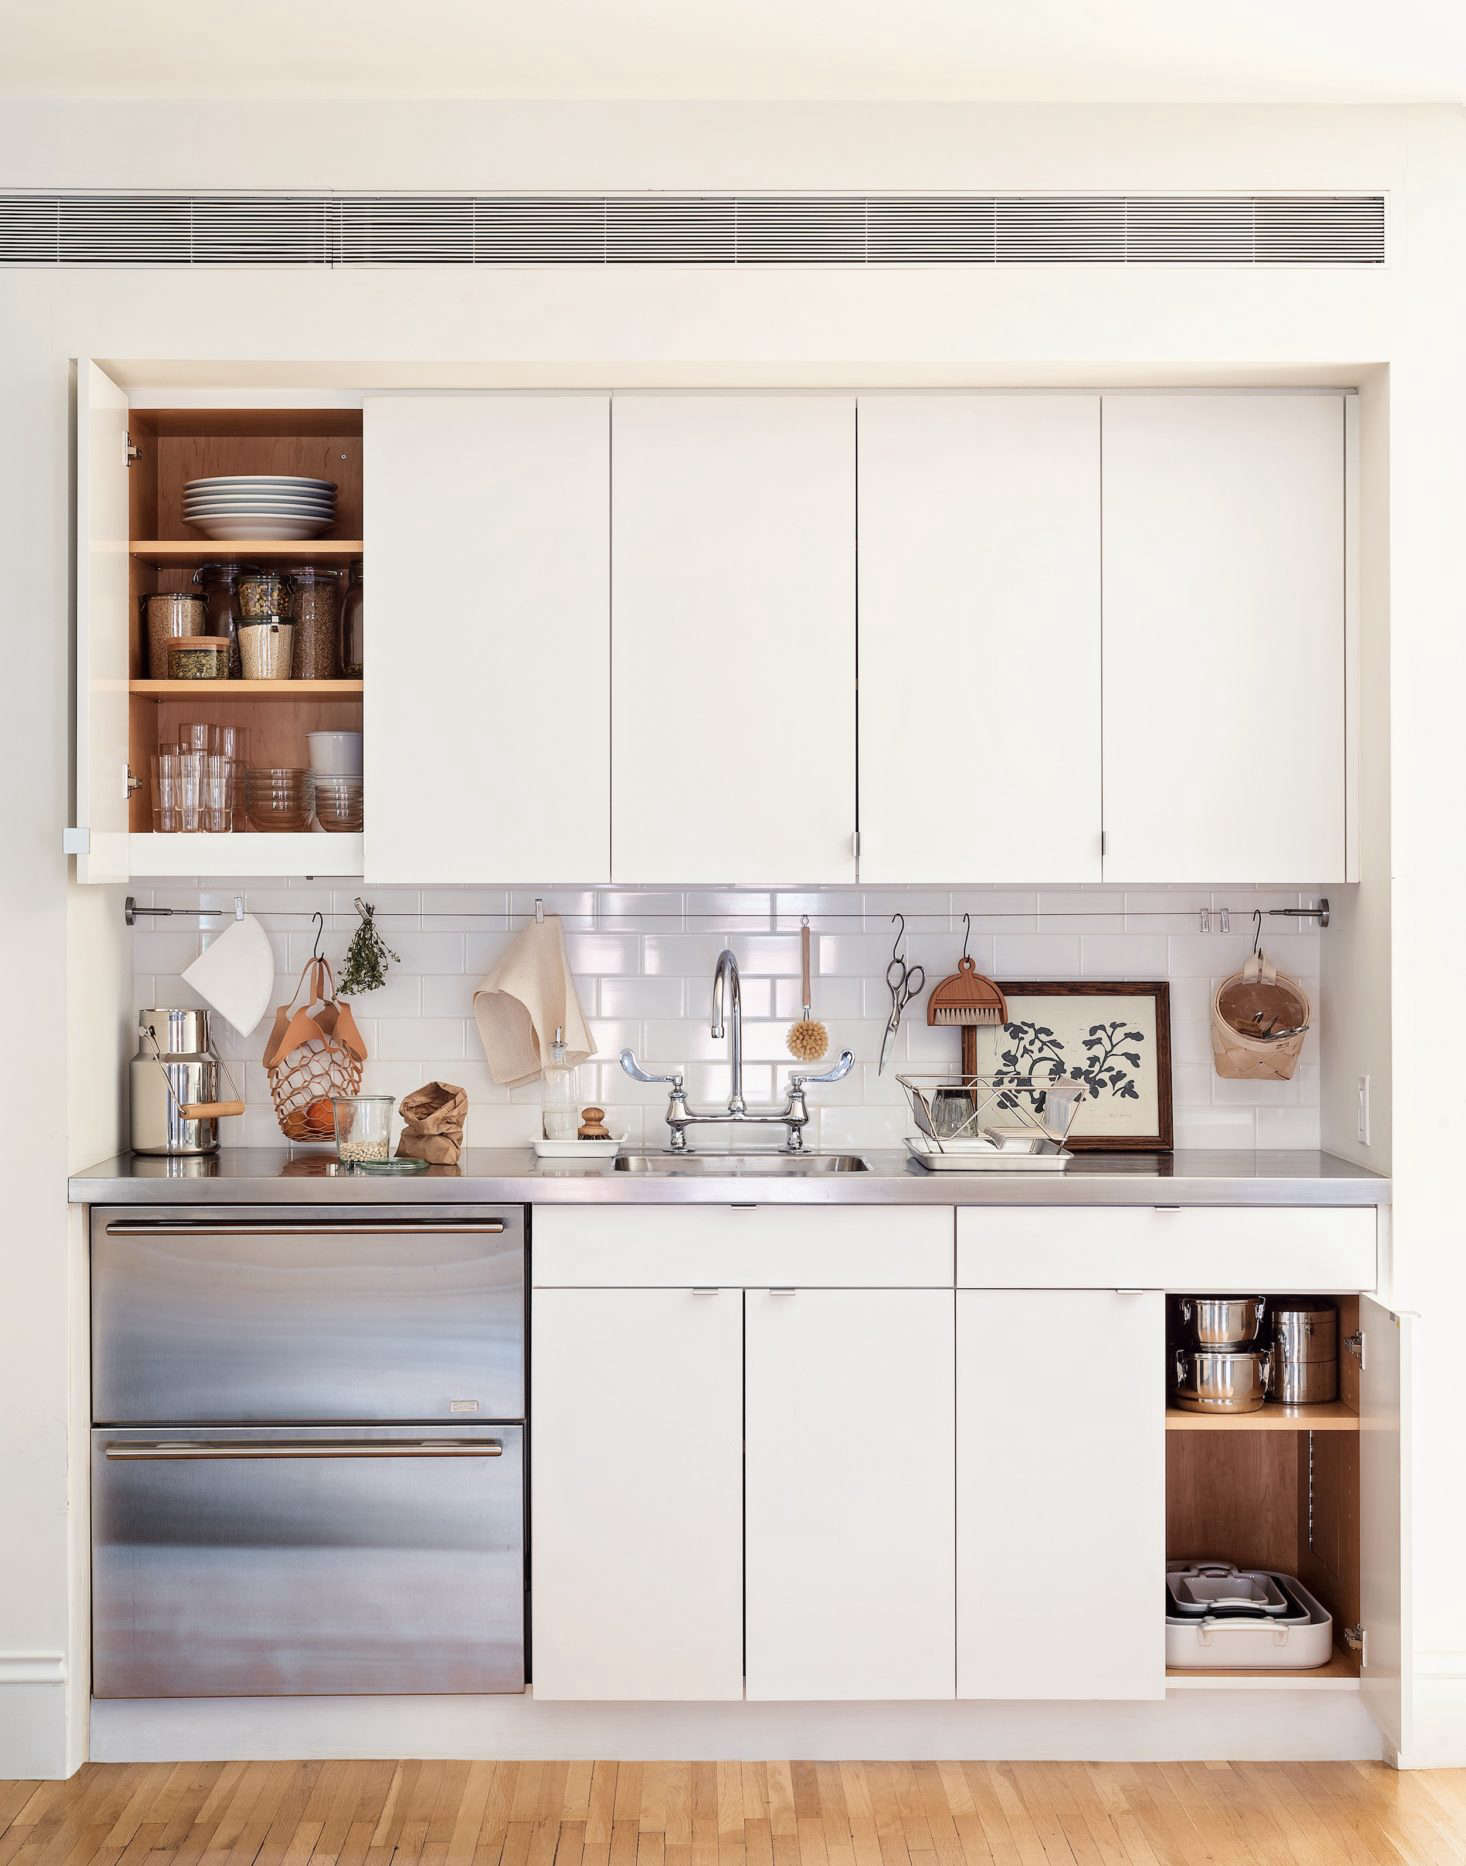 small kitchen storage ideas ikea gallery | Trending on The Organized Home: Space-Saving Storage ...